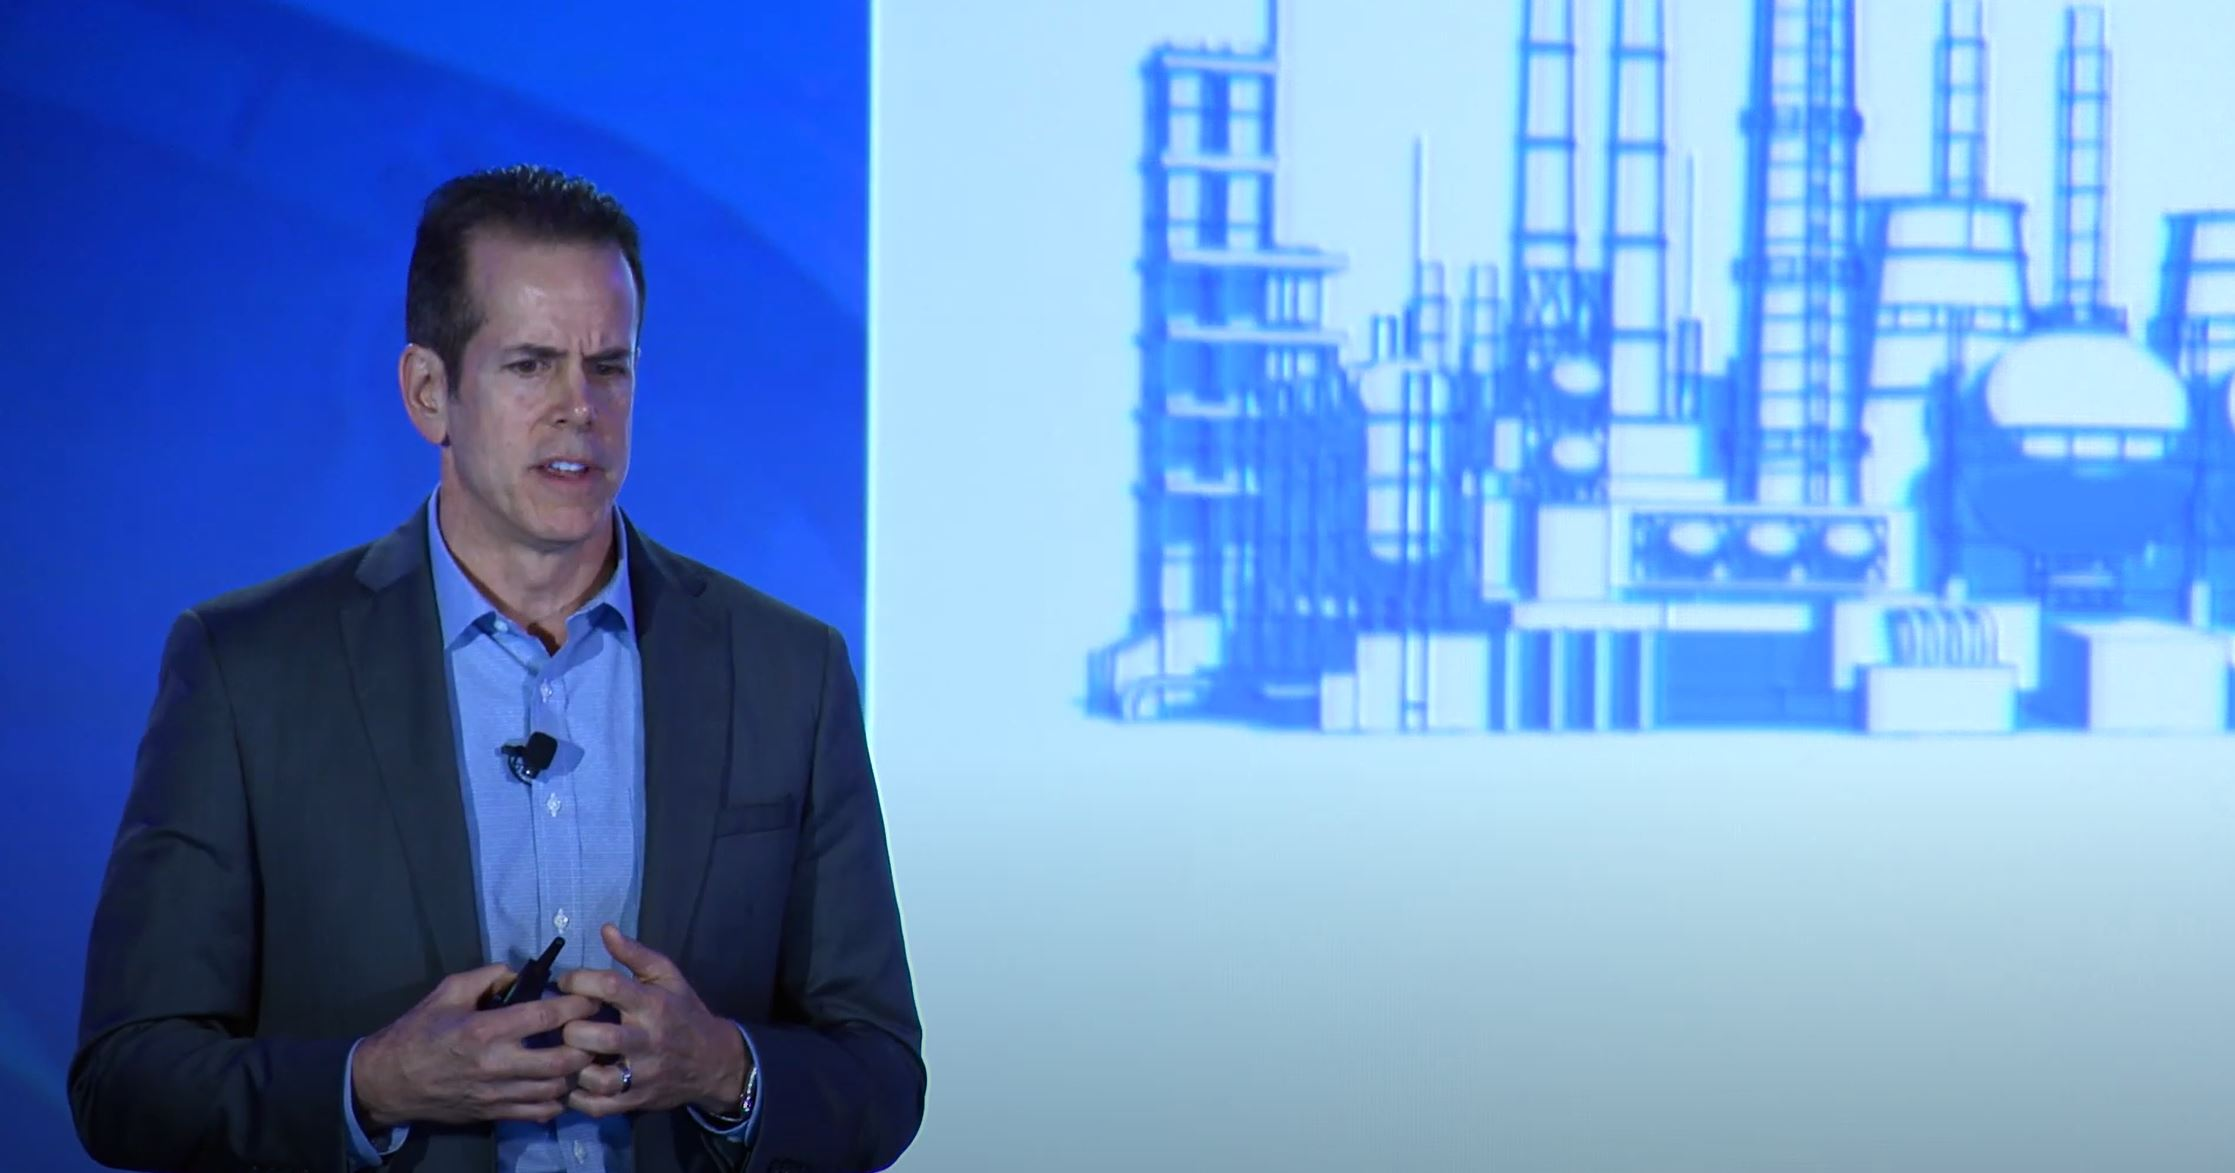 2018 Emerson Exchange Press Event: Emerson's Digital Twin Capabilities